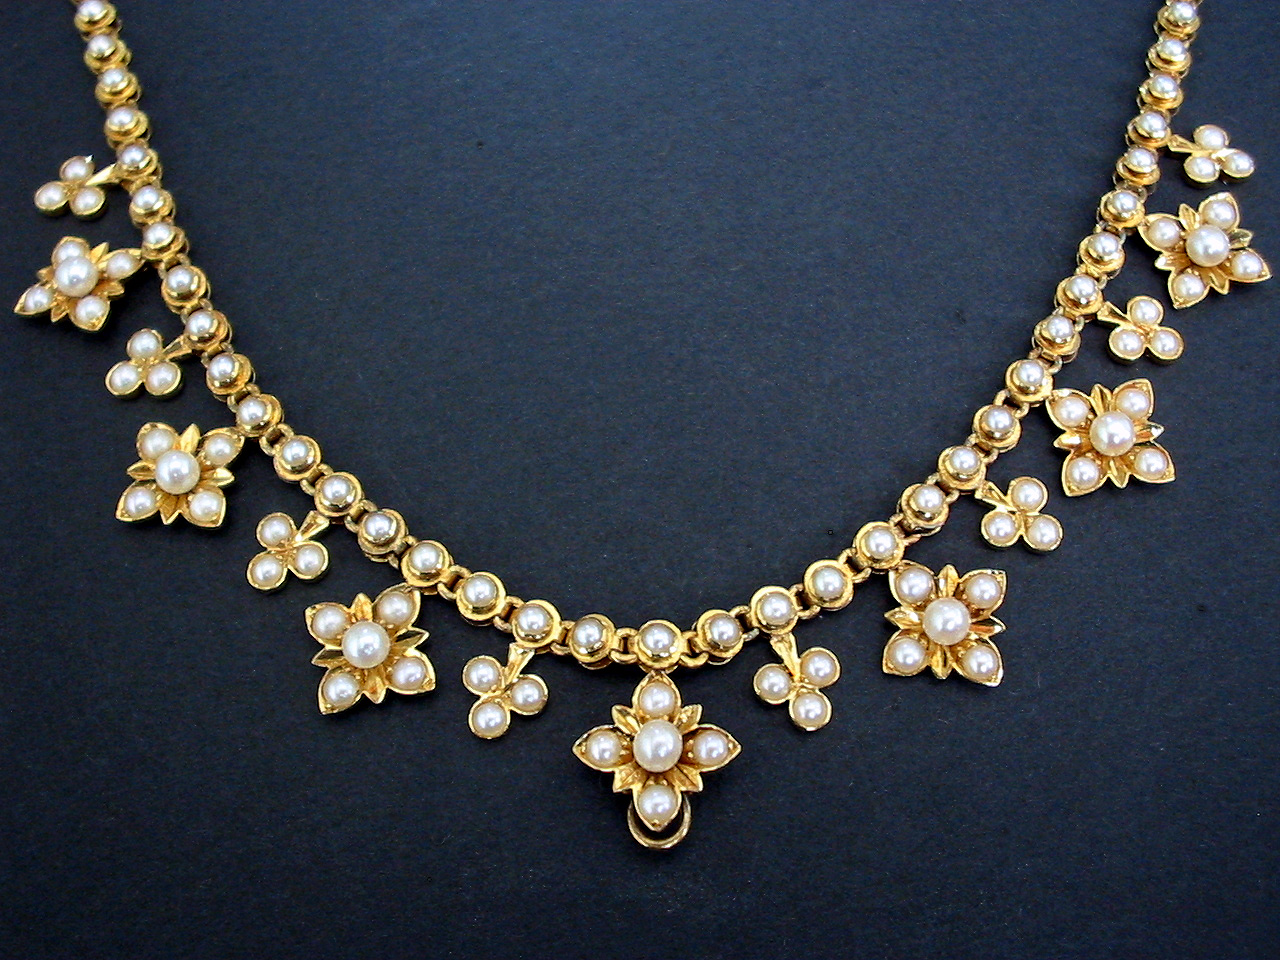 35 Festivity Necklaces Designs For Your Beautiful Neck